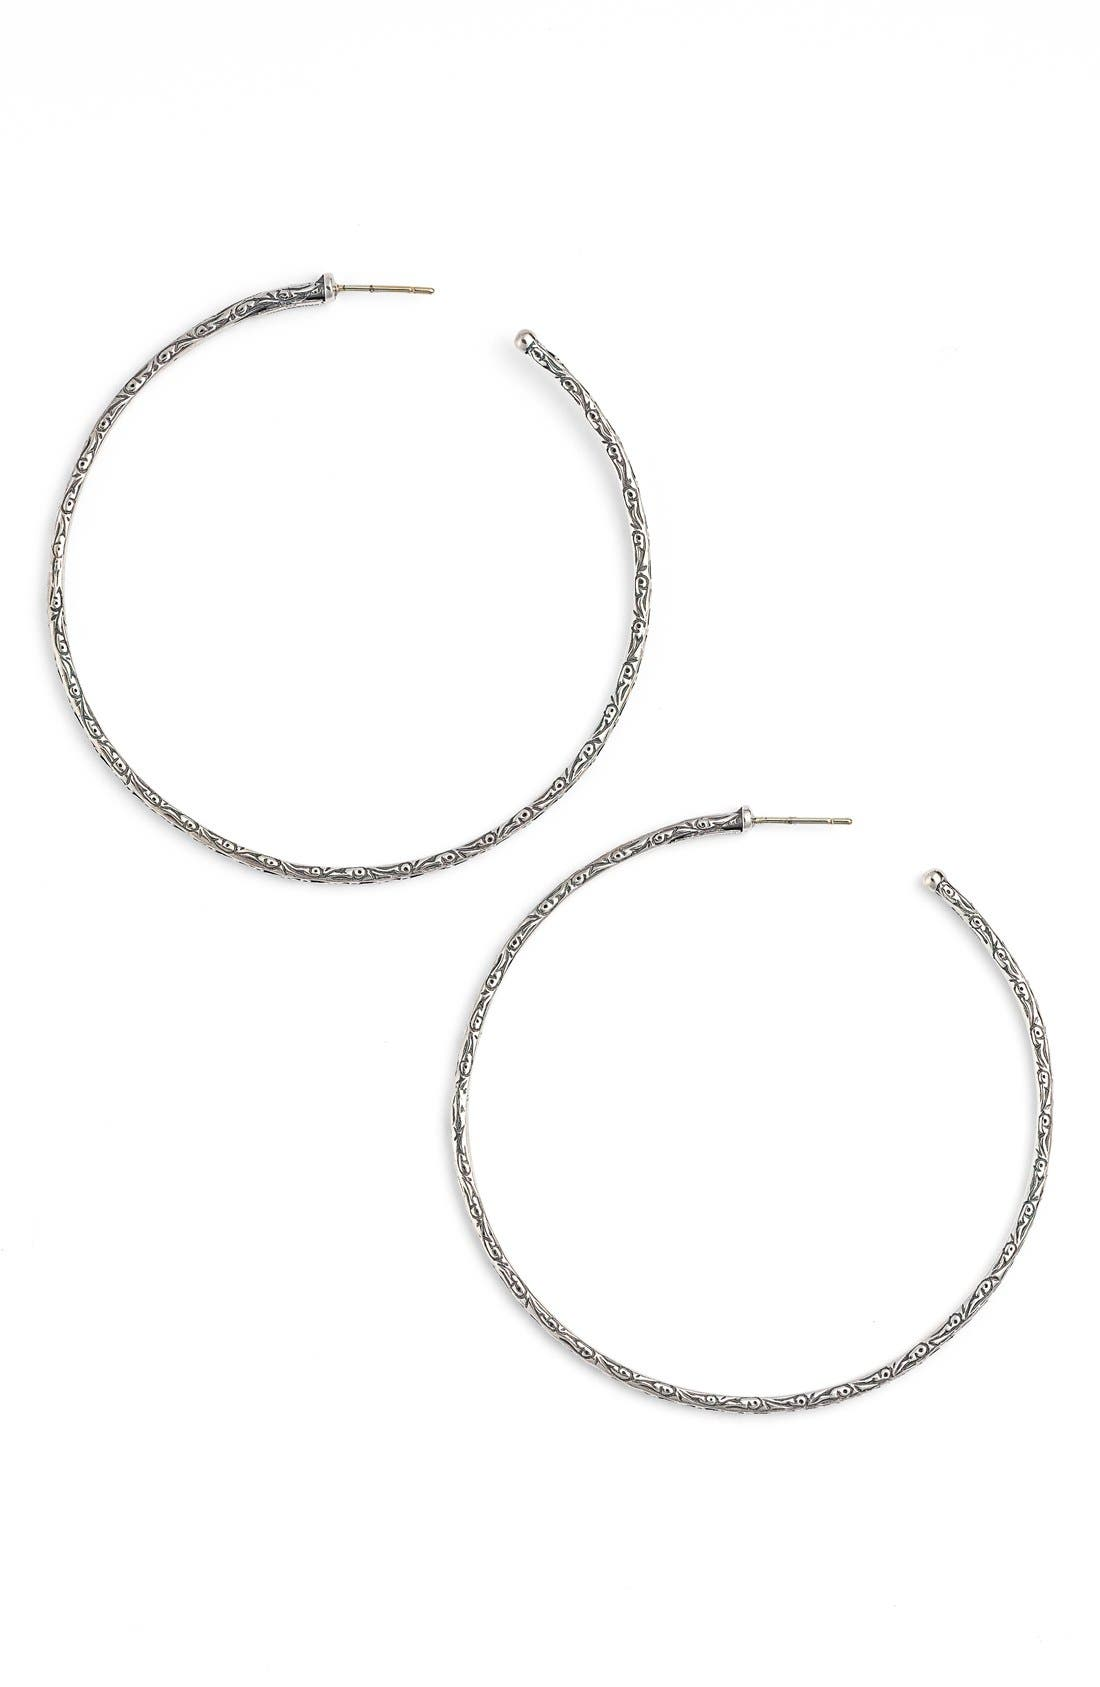 'Silver Classics' Large Etched Hoop Earrings,                             Main thumbnail 1, color,                             Silver